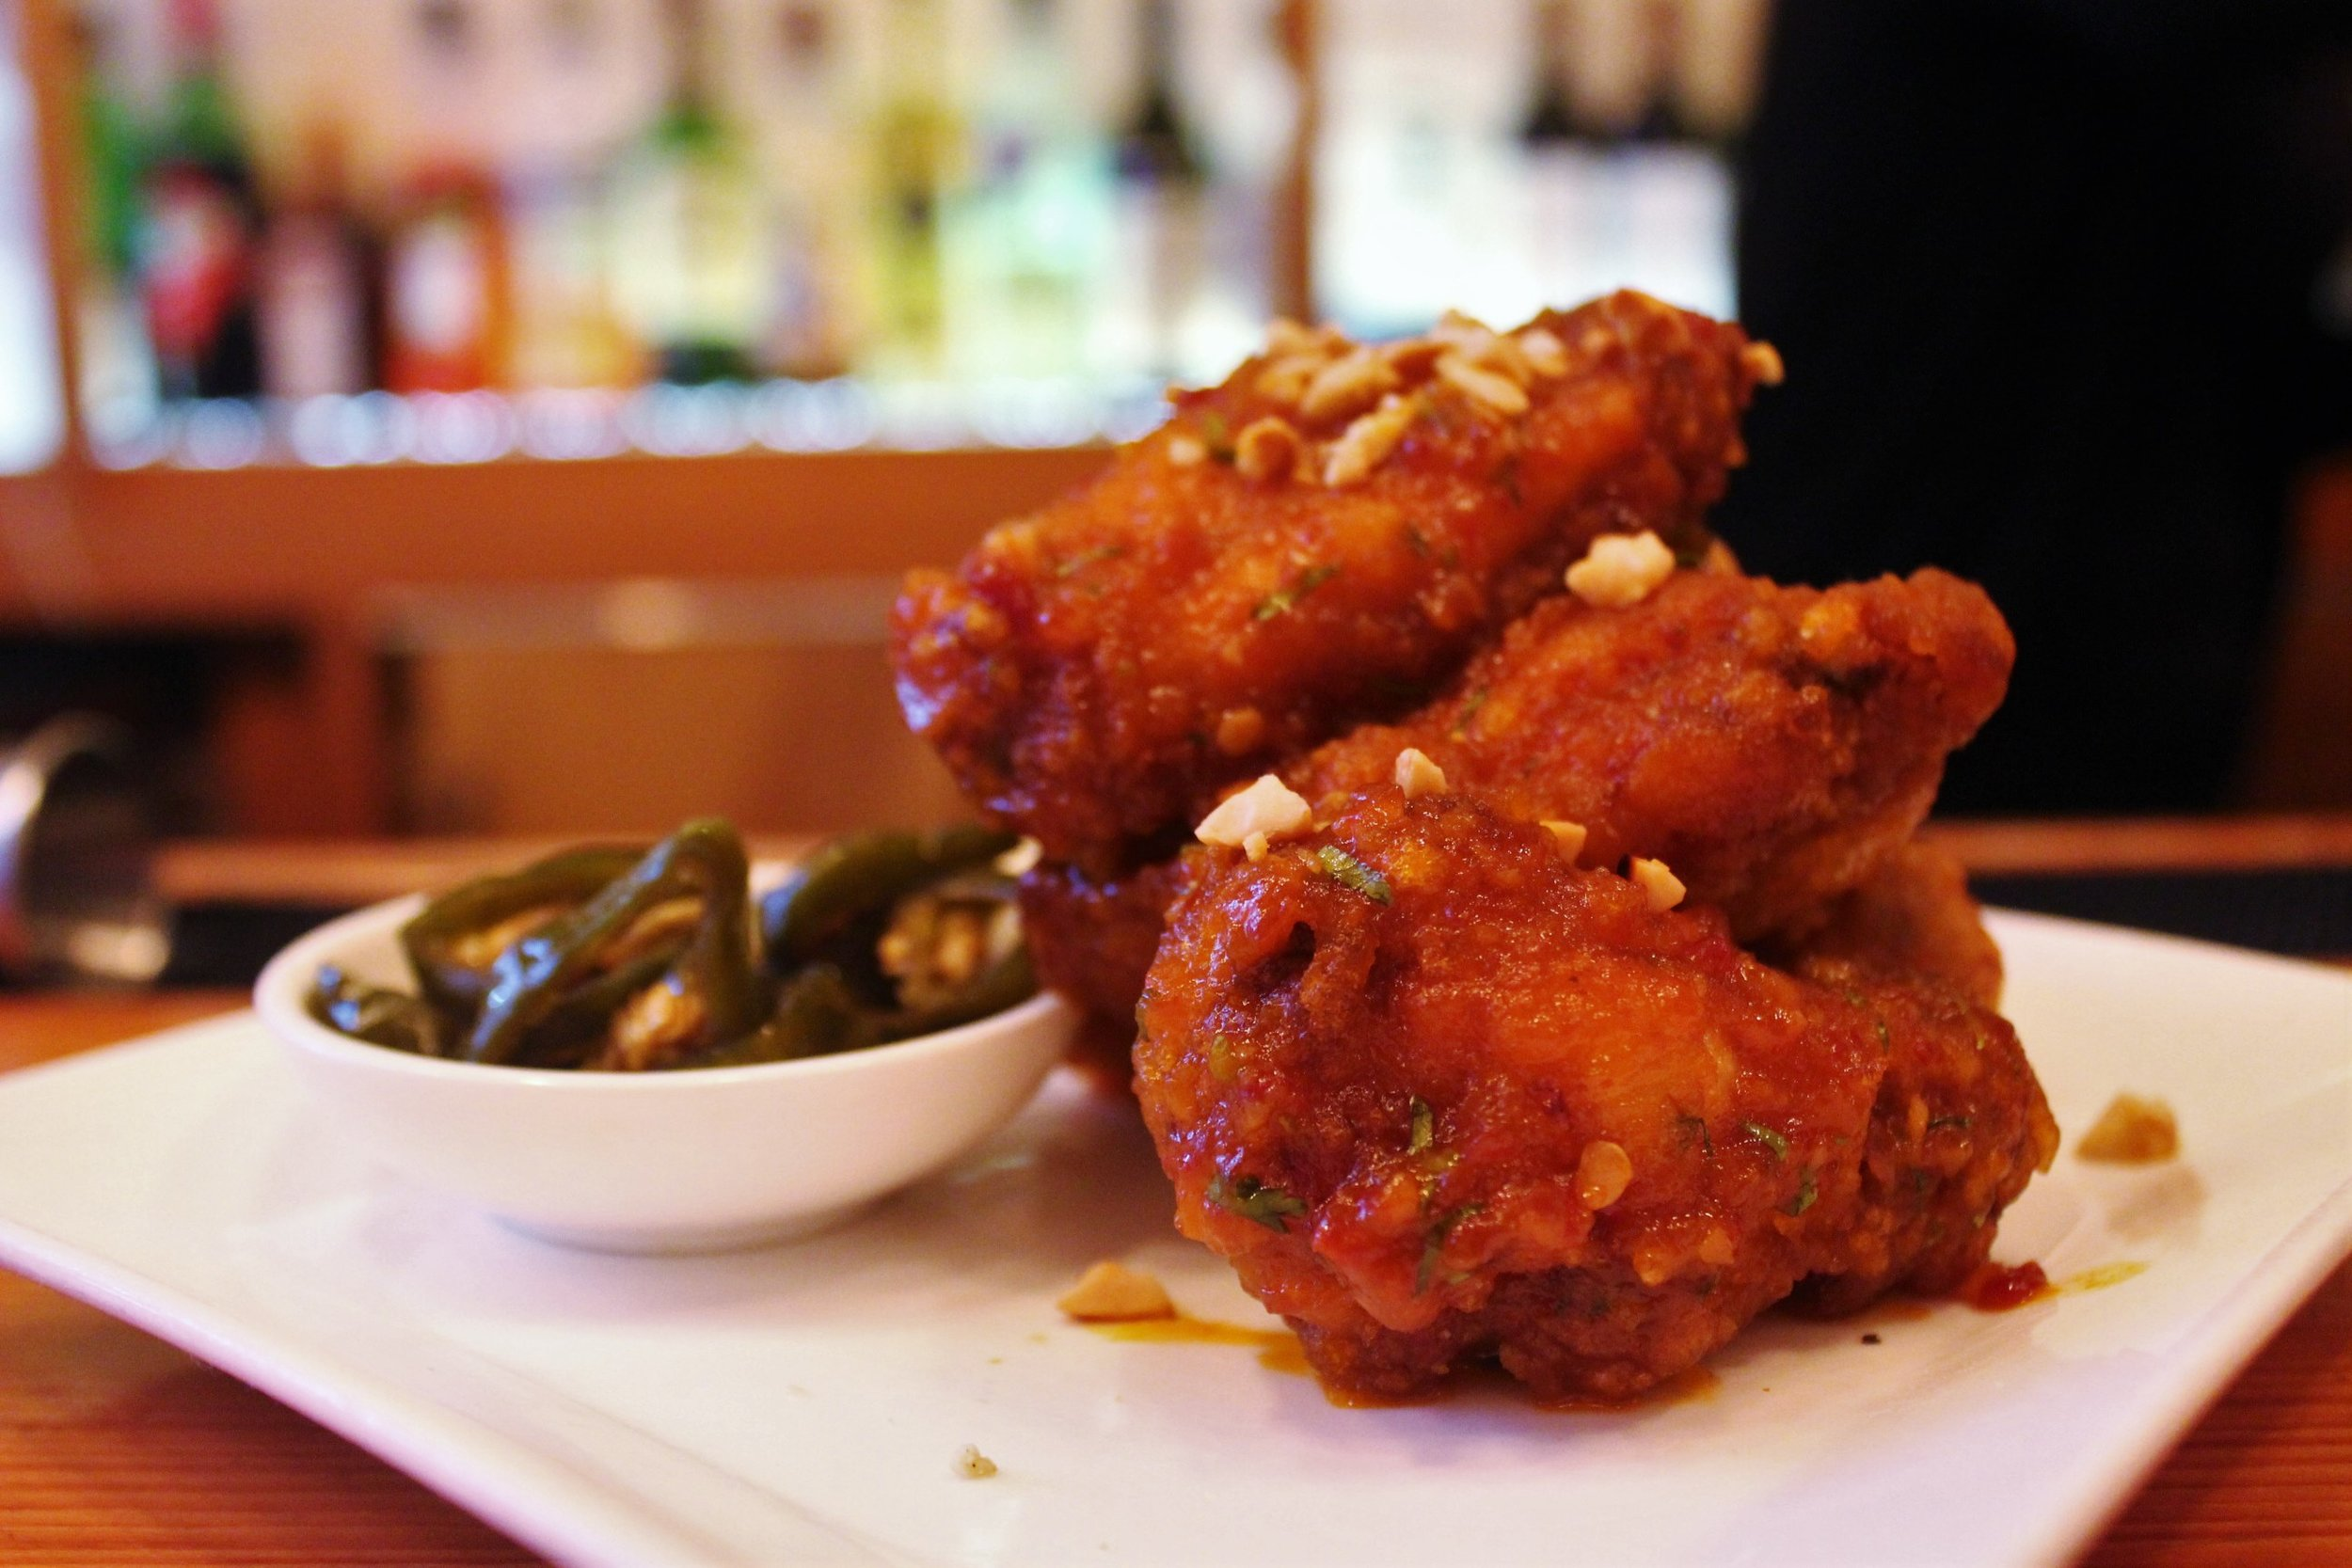 Spicy Korean Fire Chicken Wings with Honey, Garlic, Four Chilies, and Peanuts at Danji